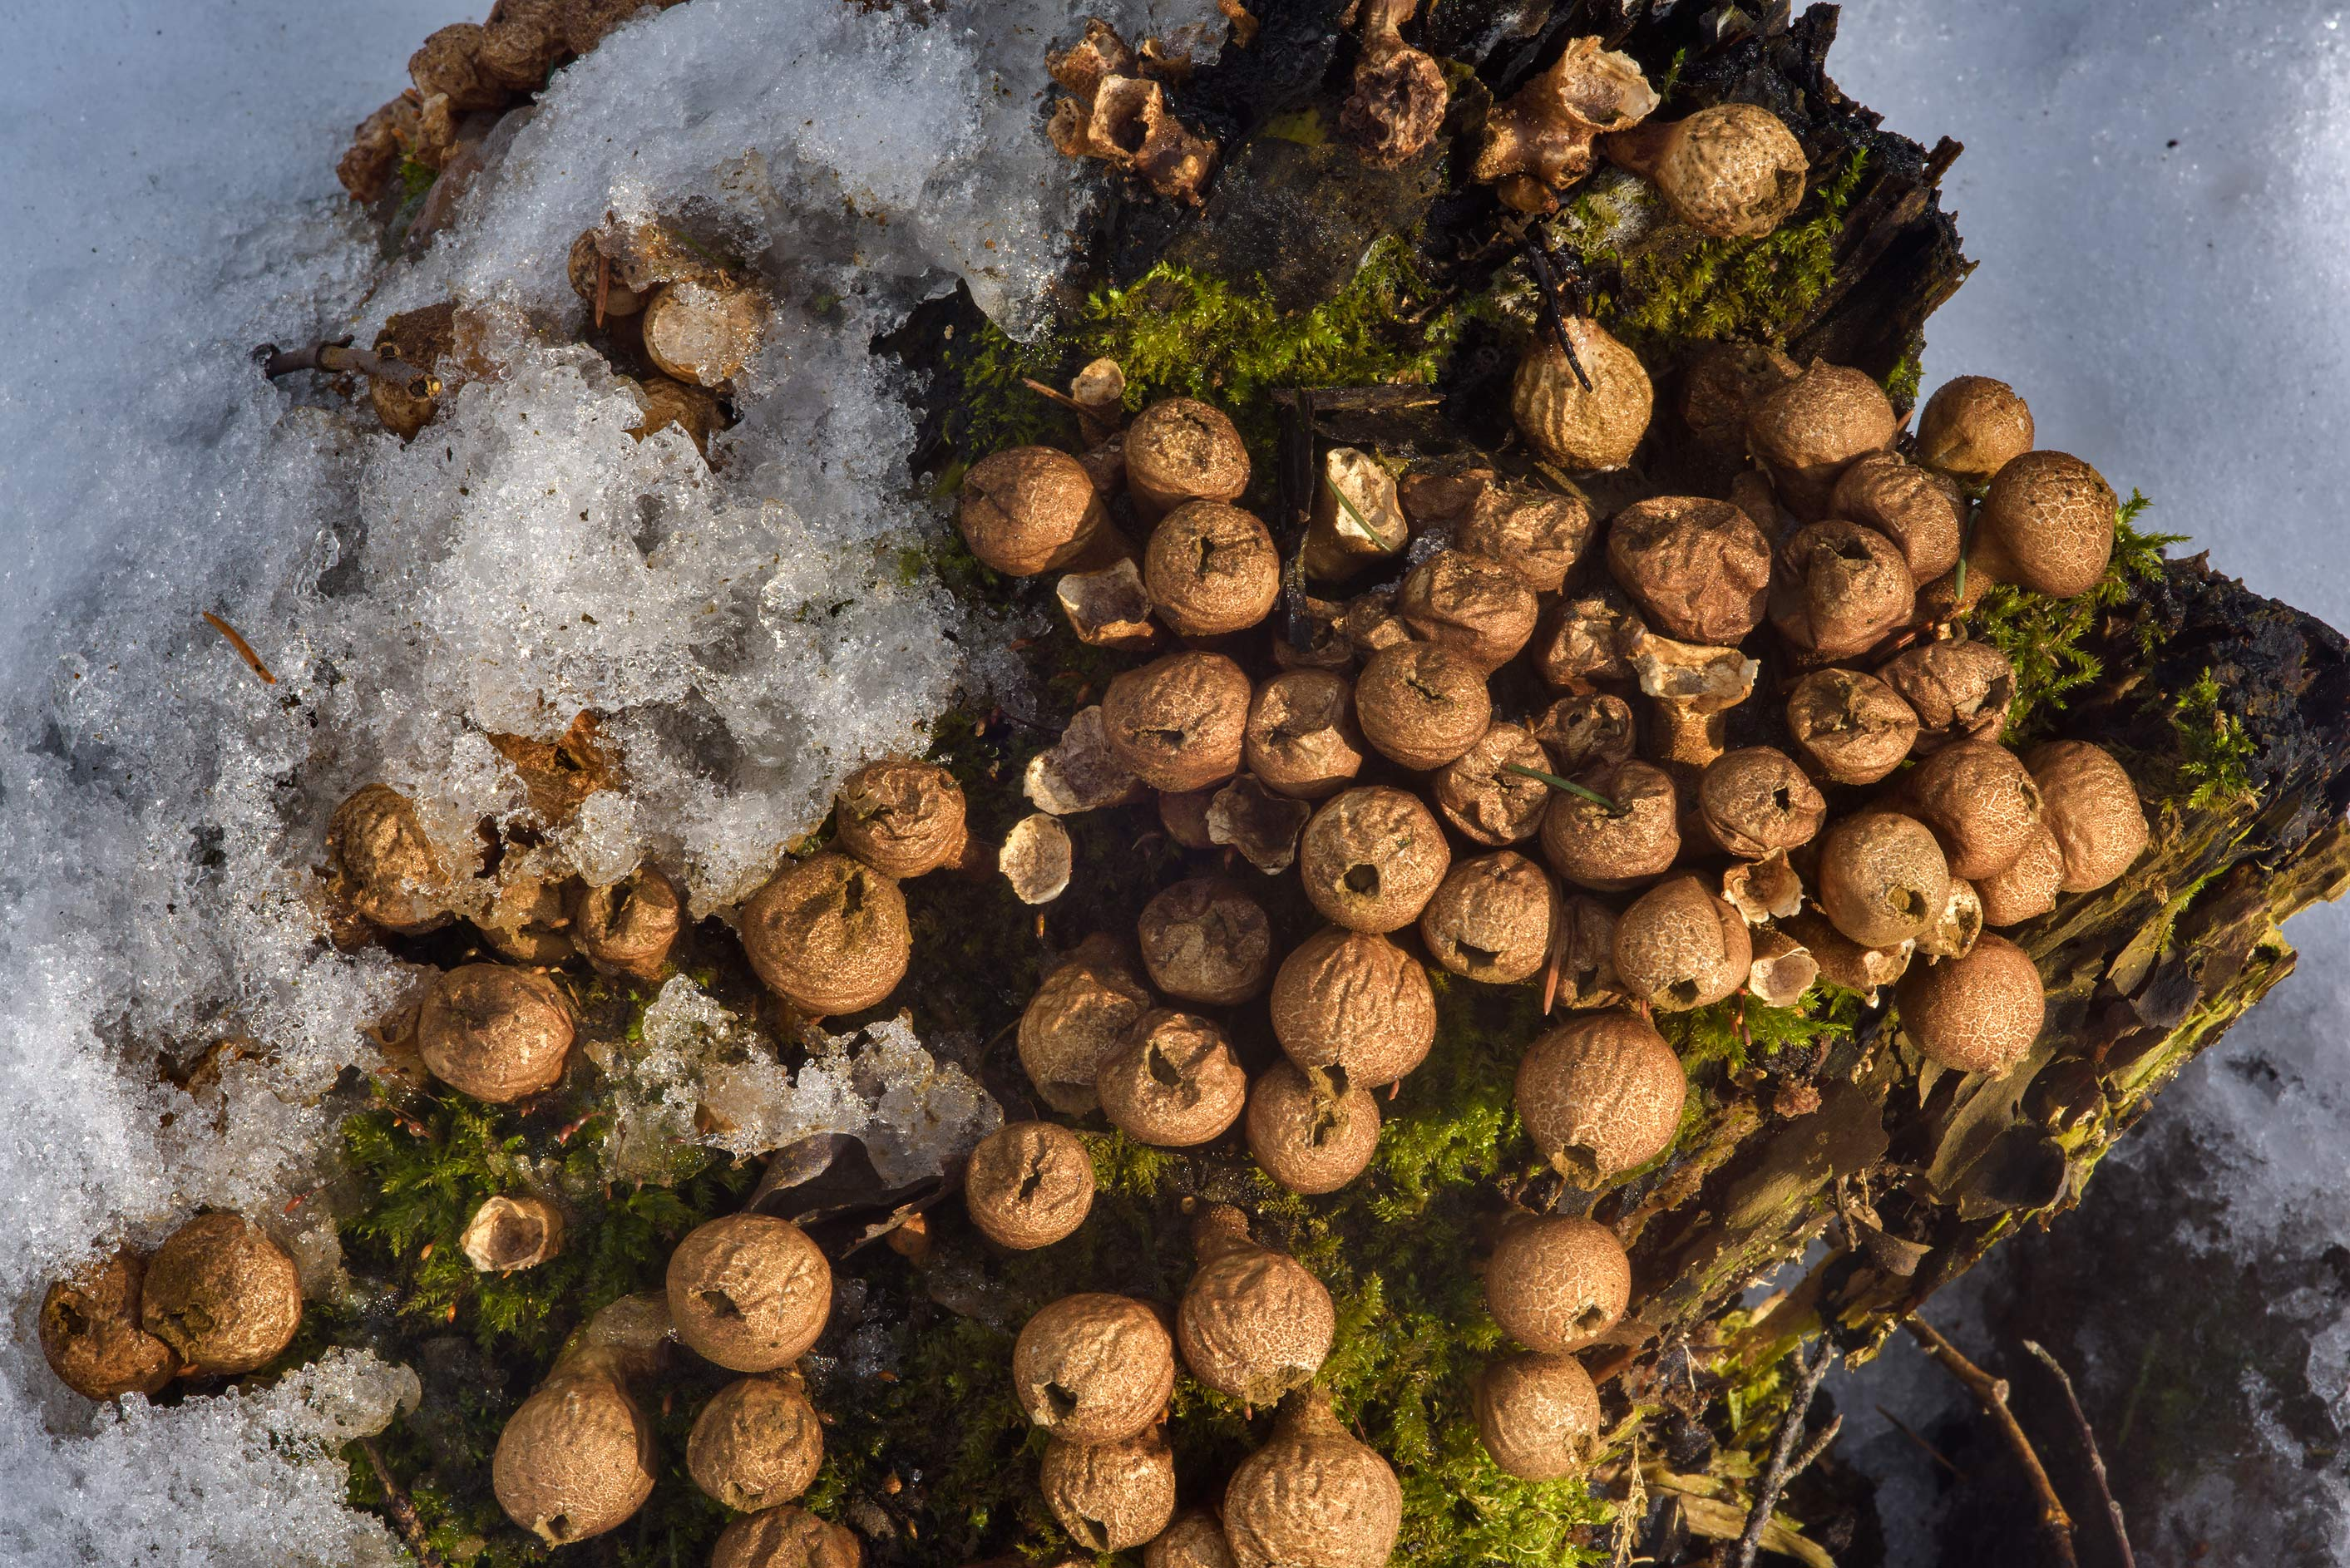 Old pear-shaped puffball mushrooms (Lycoperdon...Park. St.Petersburg, Russia